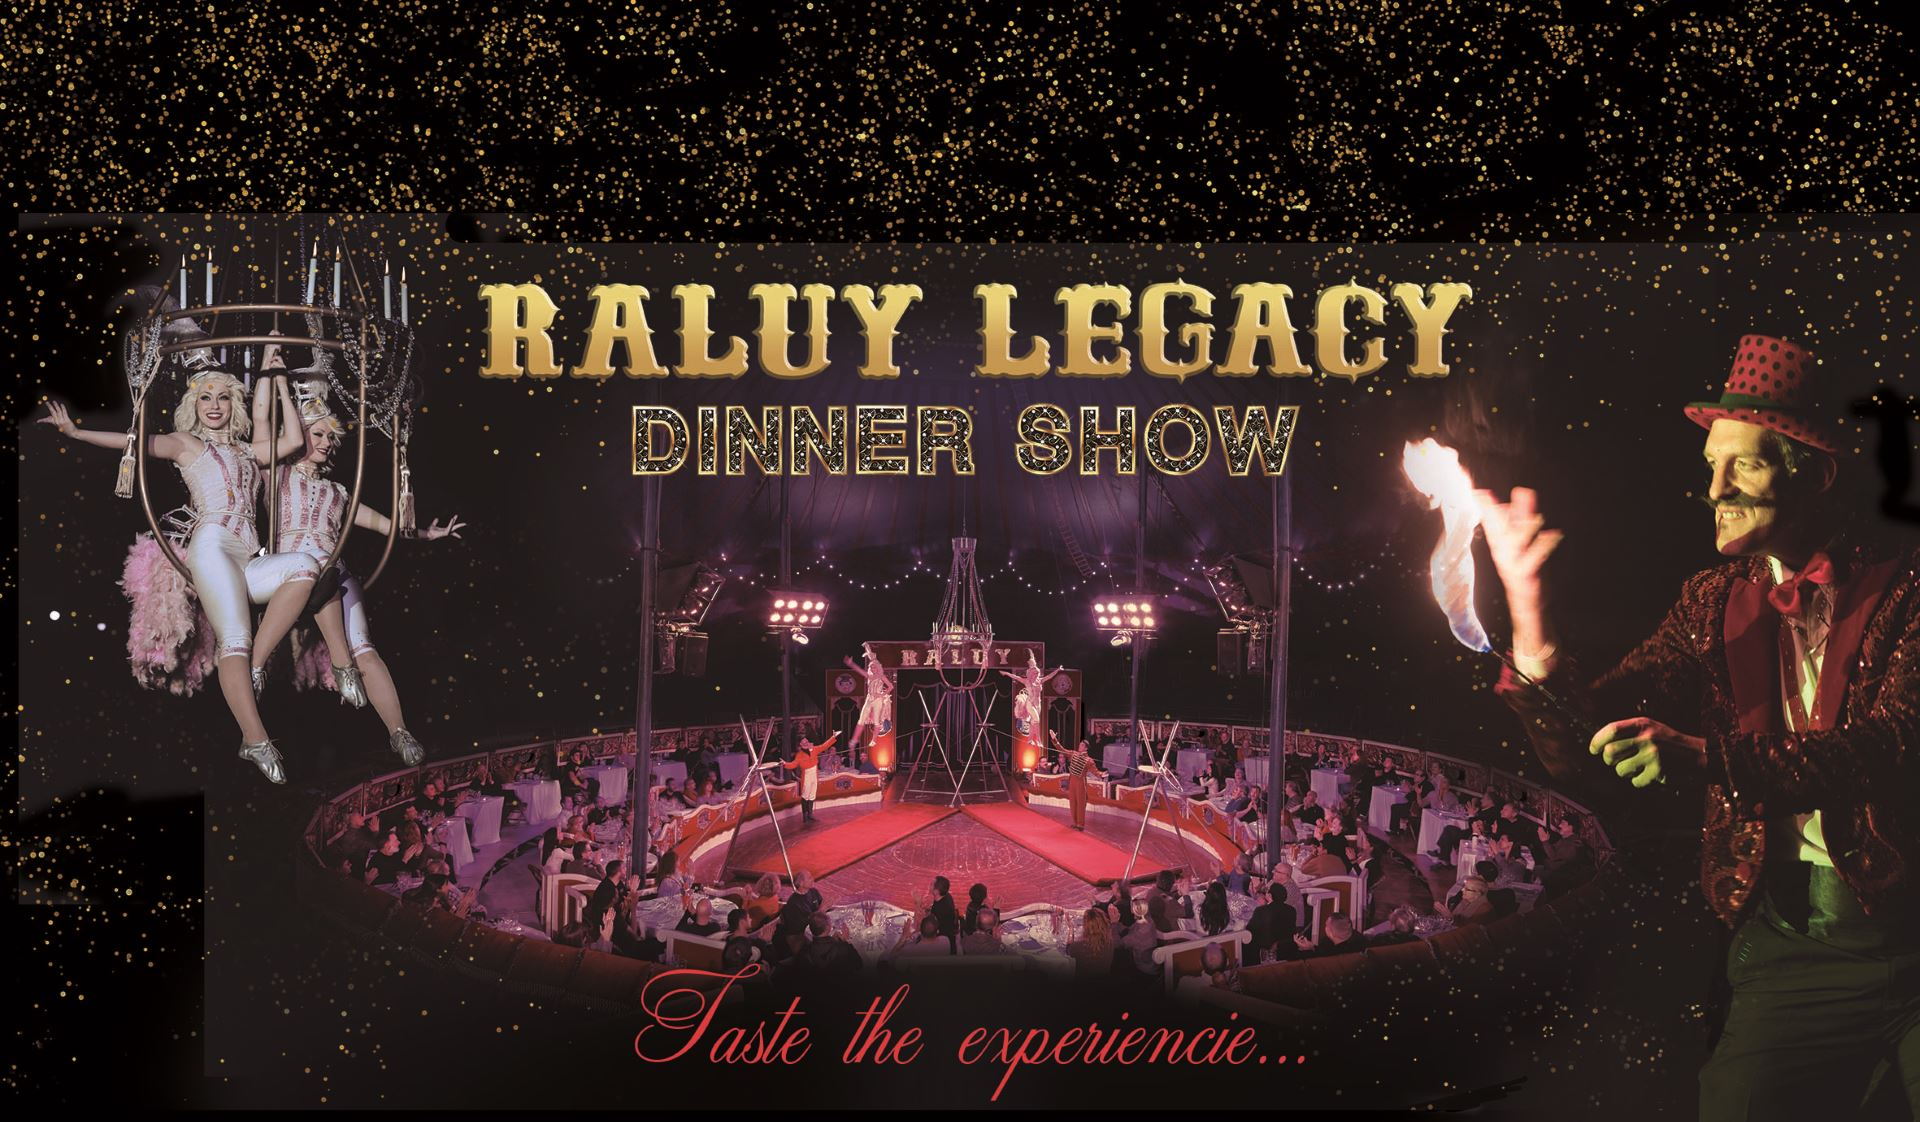 Raluy Legacy Dinner Show